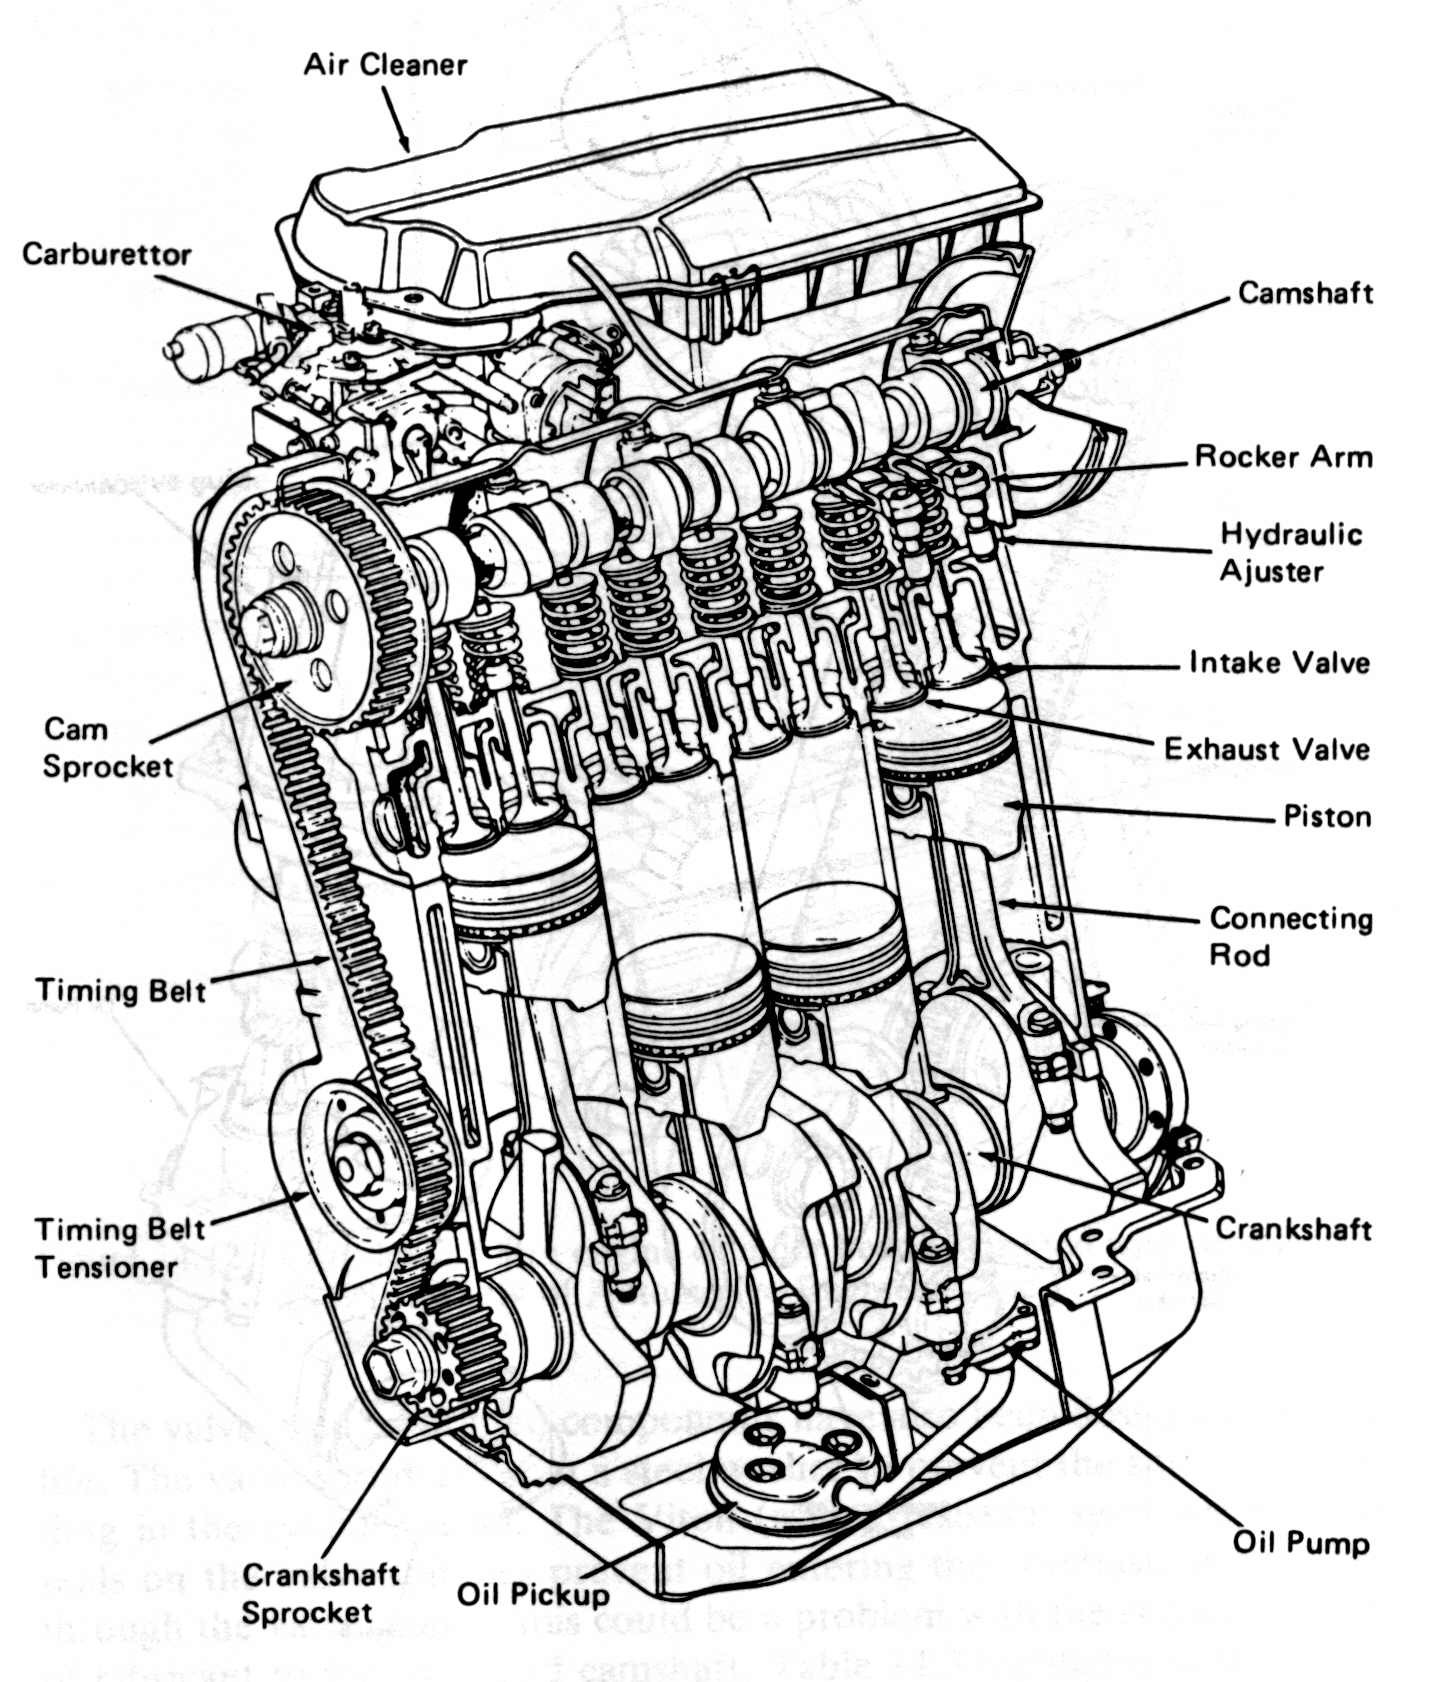 Car engine diagram for dummies amazing diesel engine diagram labeled